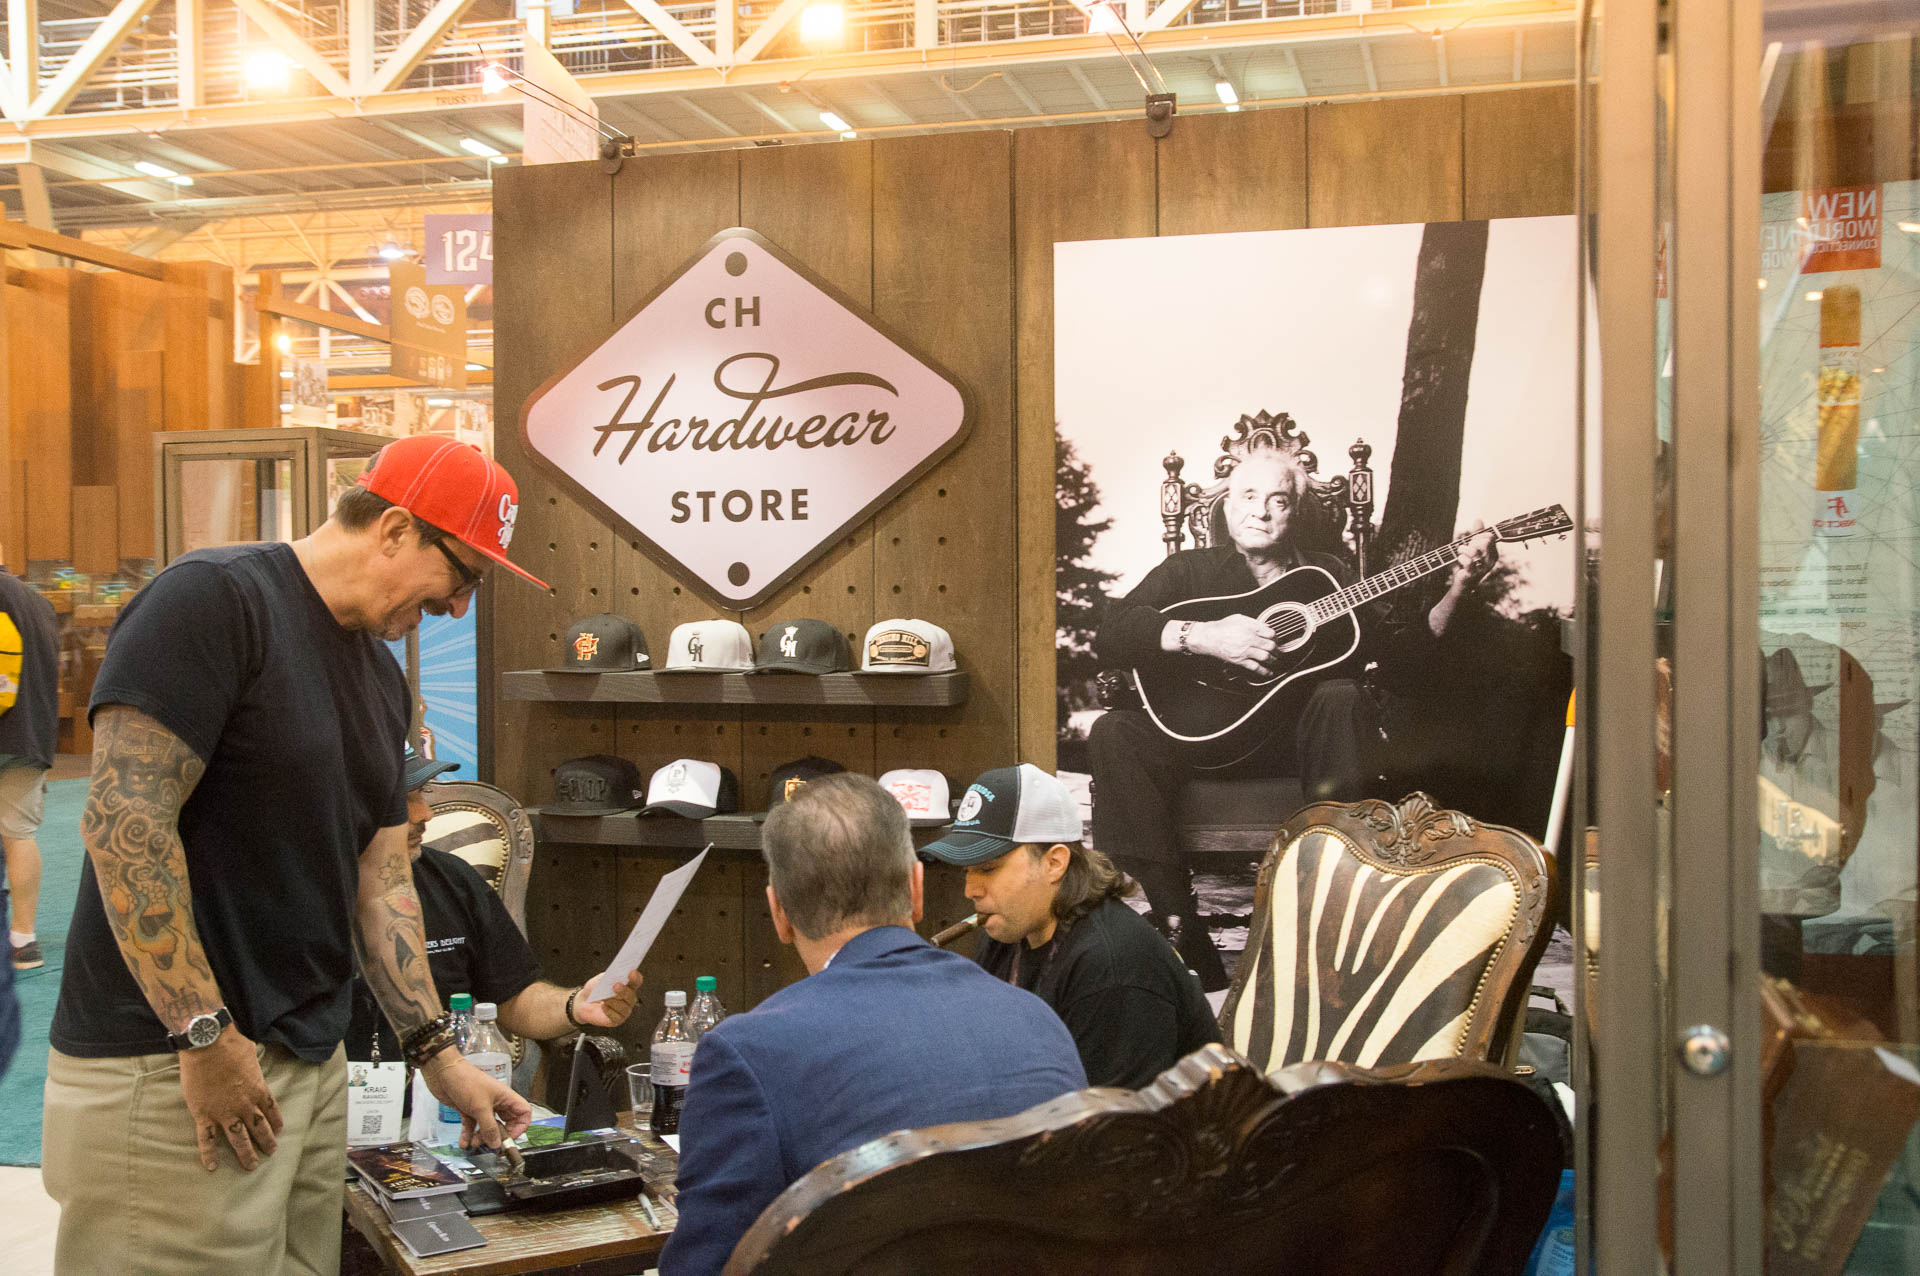 IPCPR: The Show in Pictures 2015 – Crowned Heads